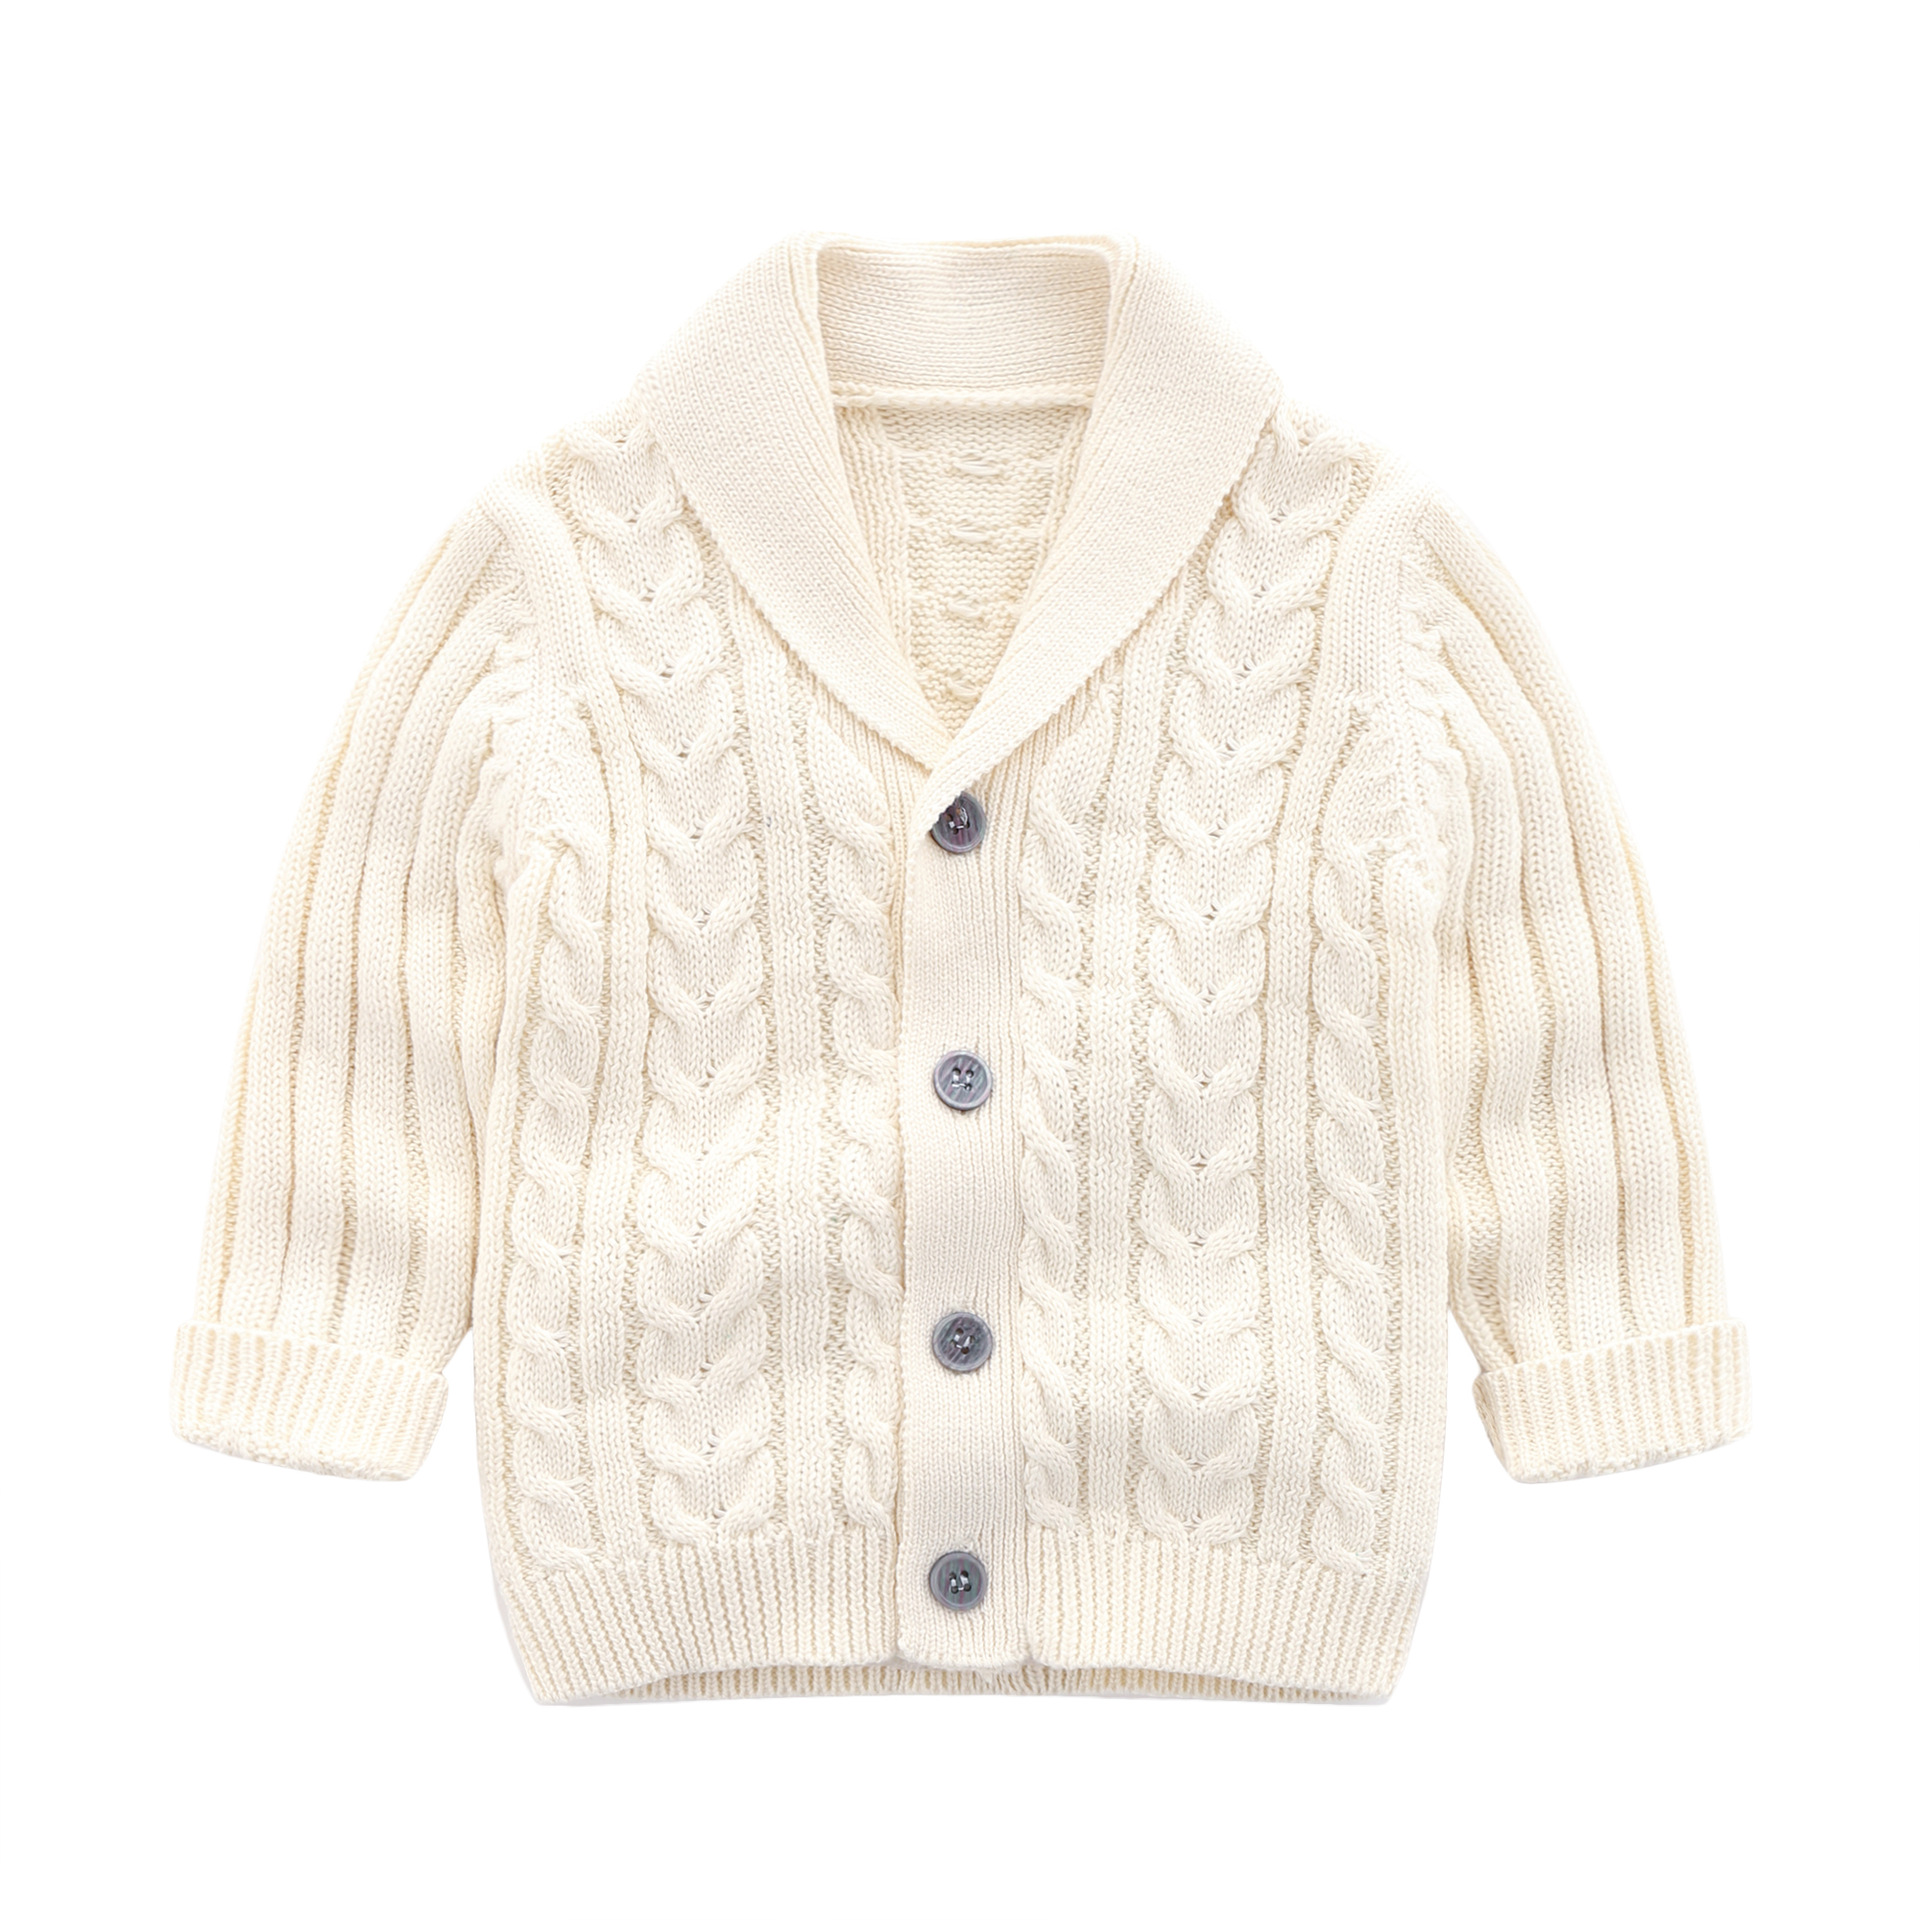 Baby Boy 39 s Spring Cardigan Cotton Knitted Sweaters Children 39 s Ribbed Twisted Knitted Jacket Clothing Coat for Kids Baby Boys in Sweaters from Mother amp Kids